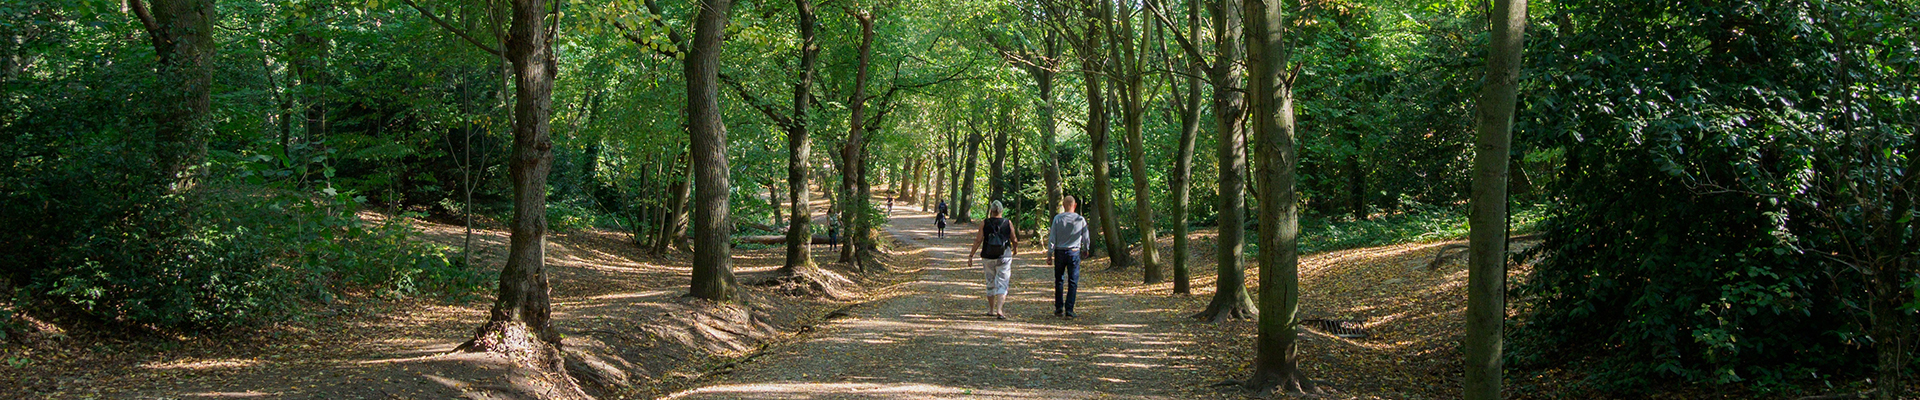 Learn more about Hampstead Garden Suburb with our Area Guide